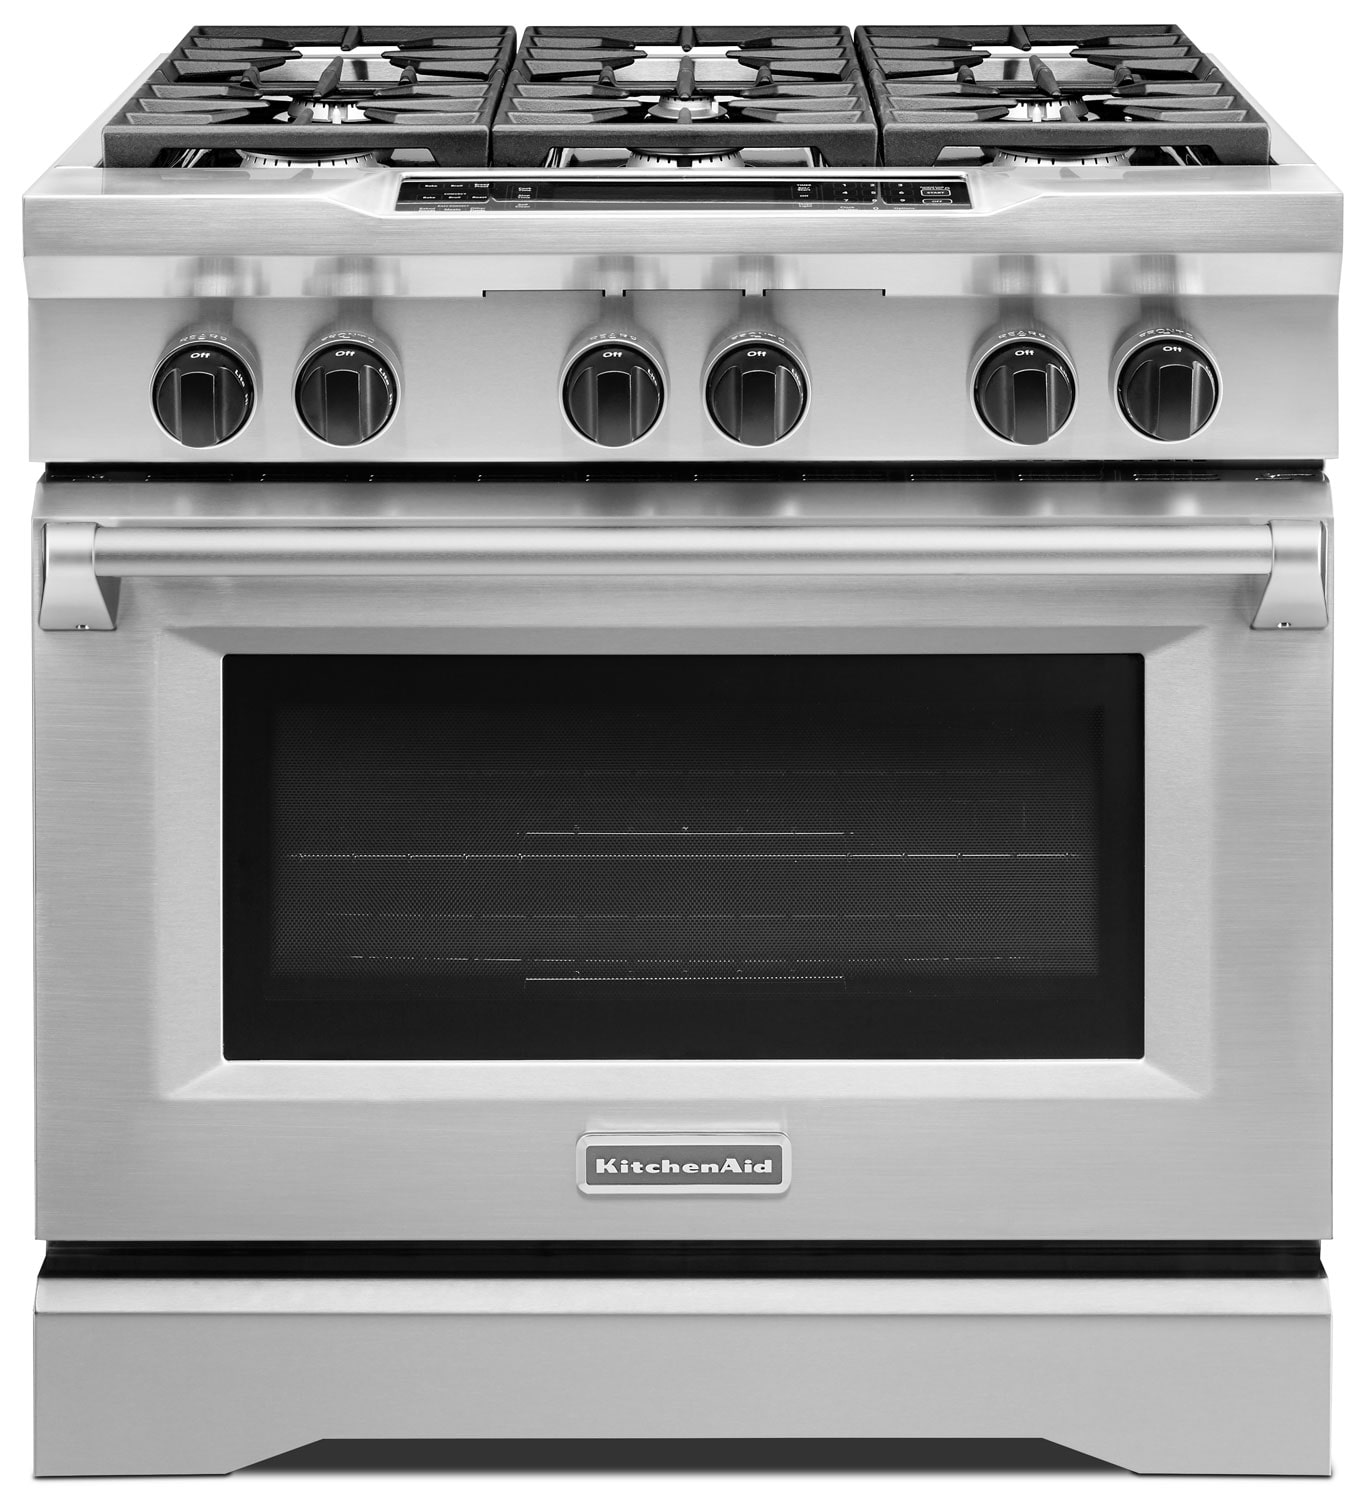 Cooking Products - KitchenAid Stainless Steel Freestanding Dual Fuel Range (5.1 Cu. Ft.) - KDRS467VSS